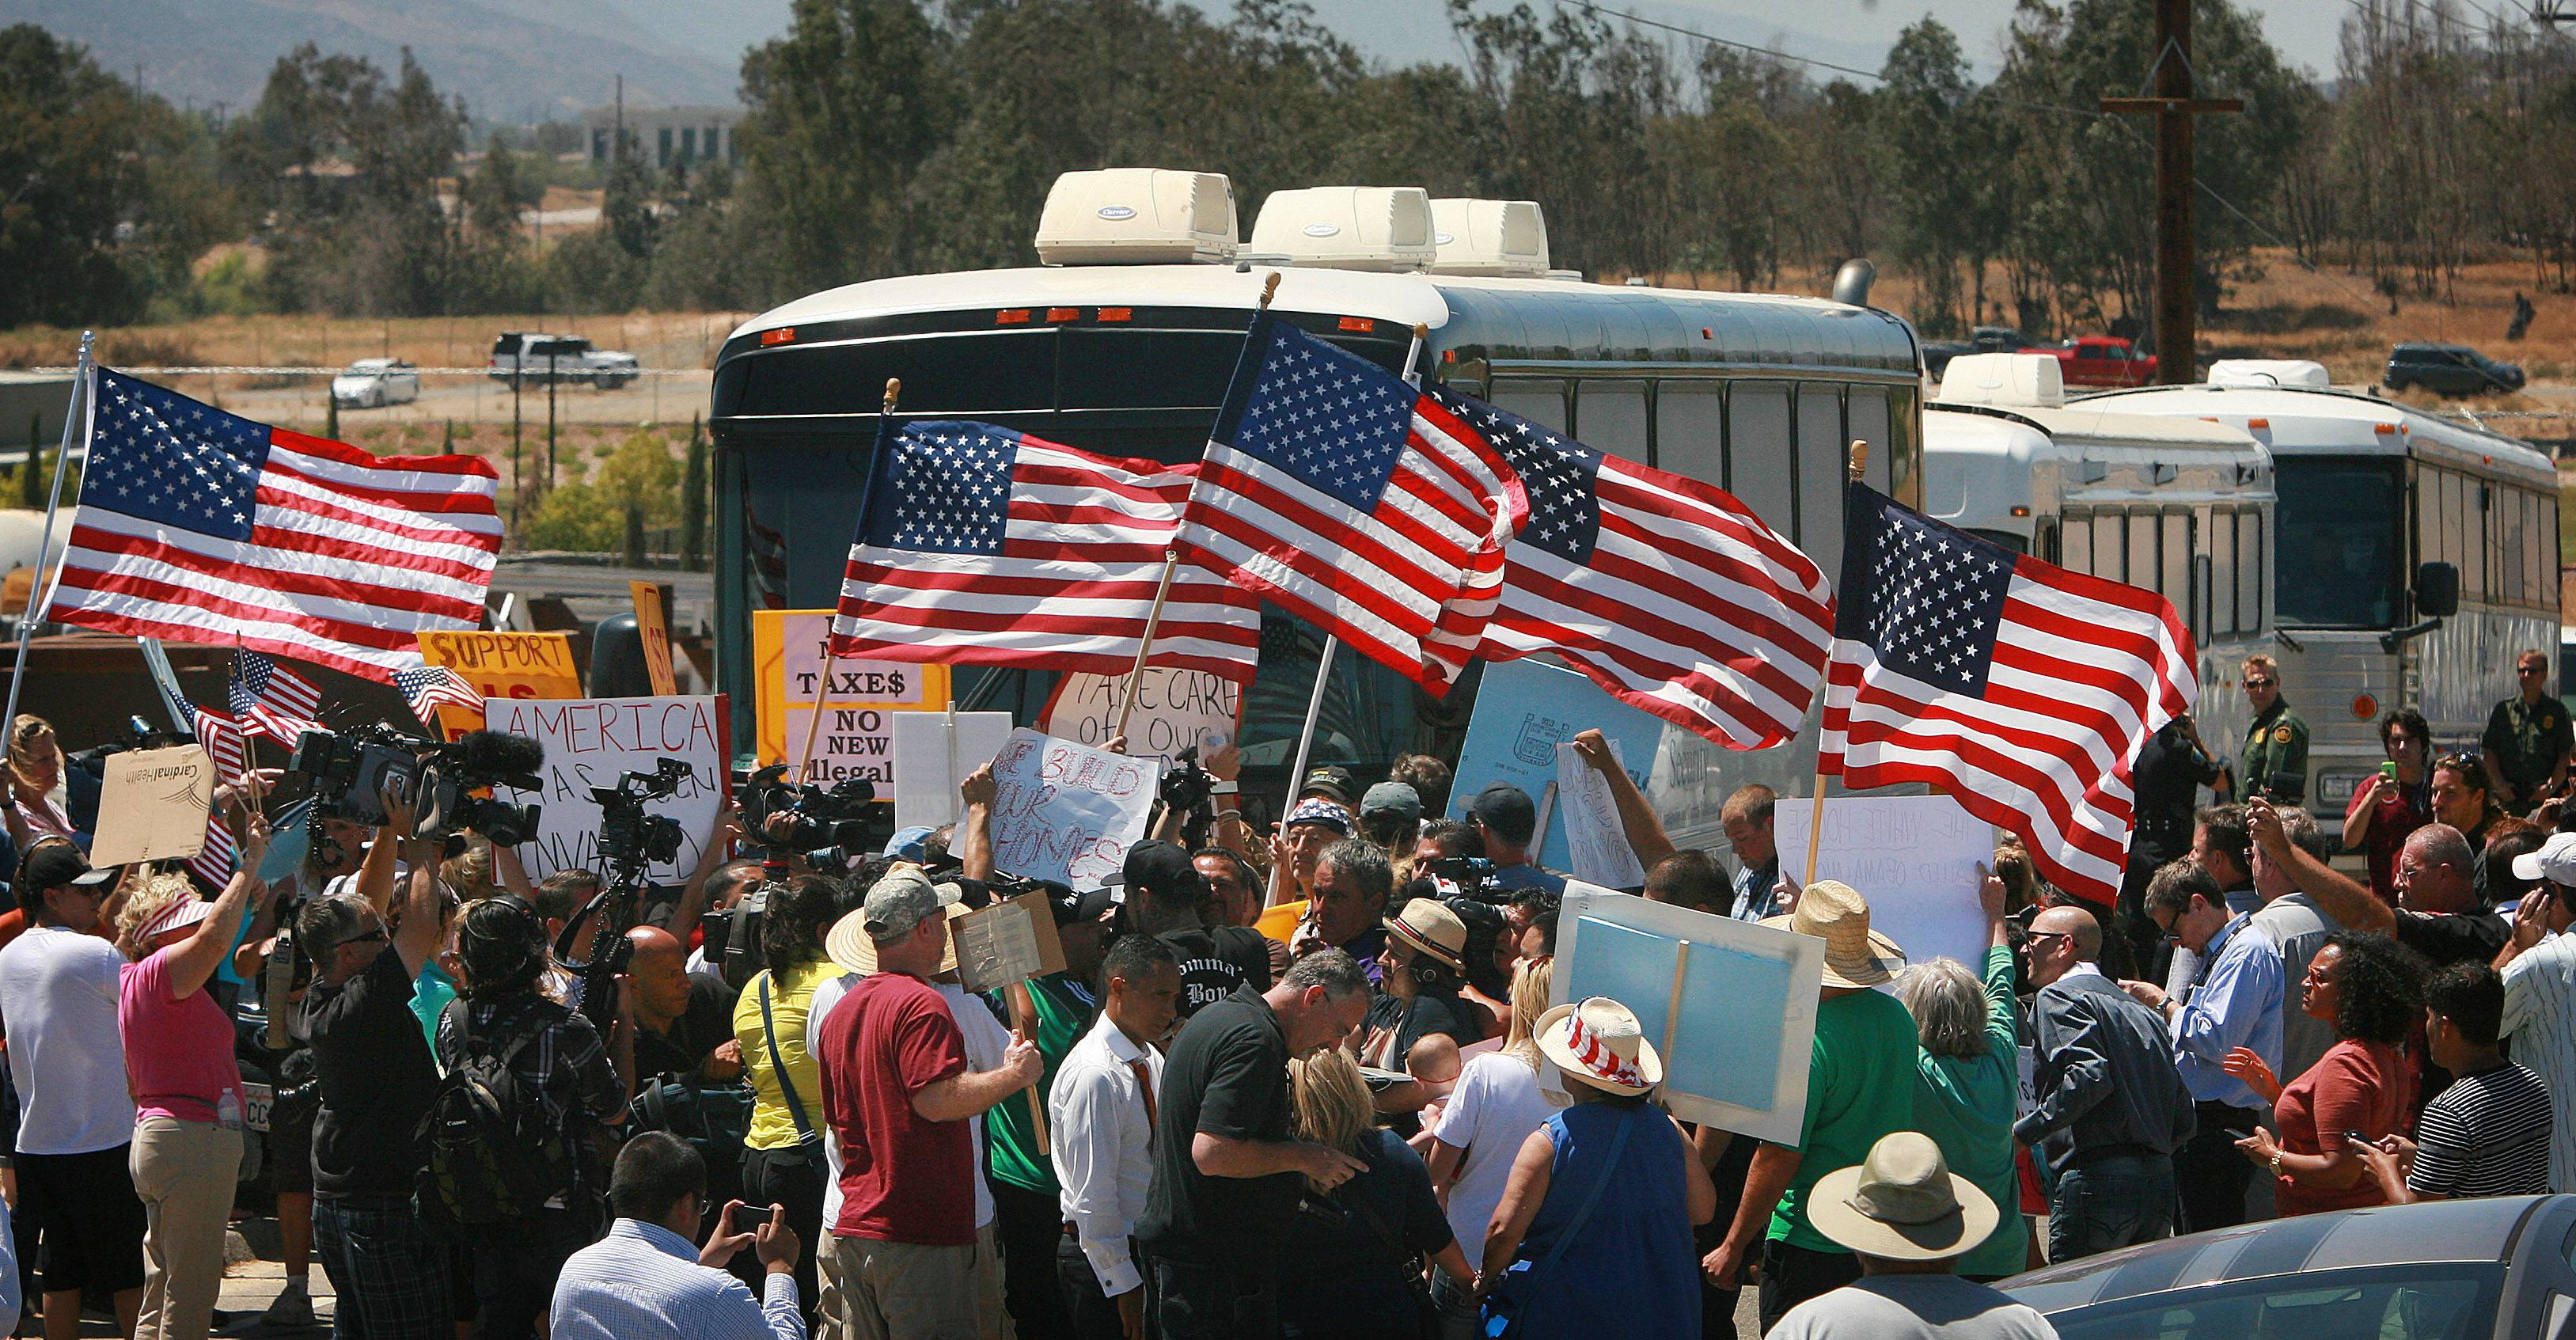 Protesters turn back three buses carrying 140 immigrants as they attempt to enter the U.S. Border Patrol station for processing on Tuesday in Murrieta, Calif.